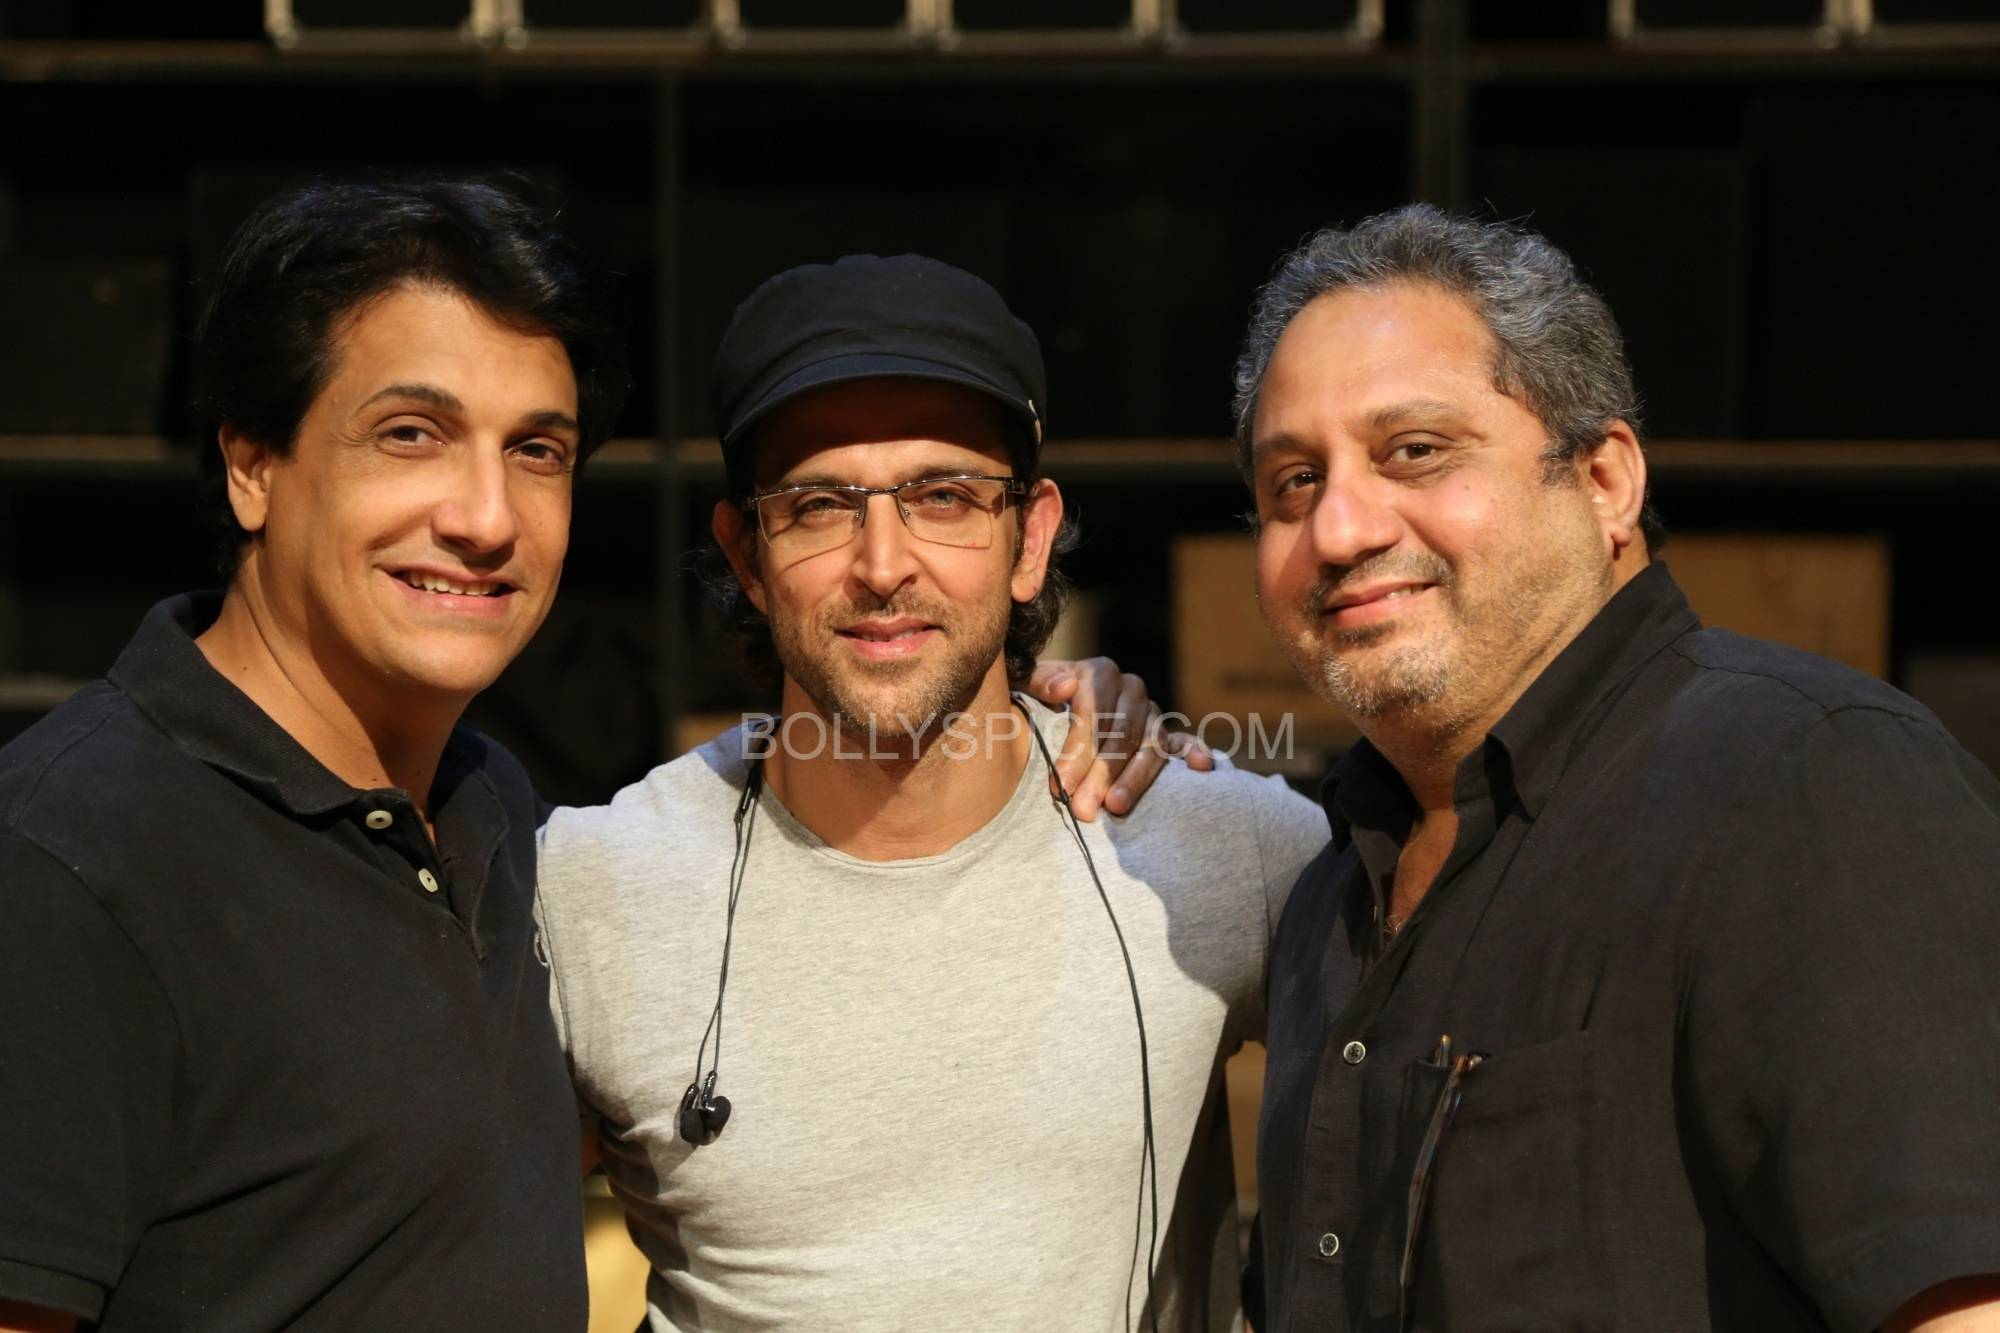 hrithikshiamakiifa2 In Pictures: Hrithik and Shiamak in rehearsal for IIFA